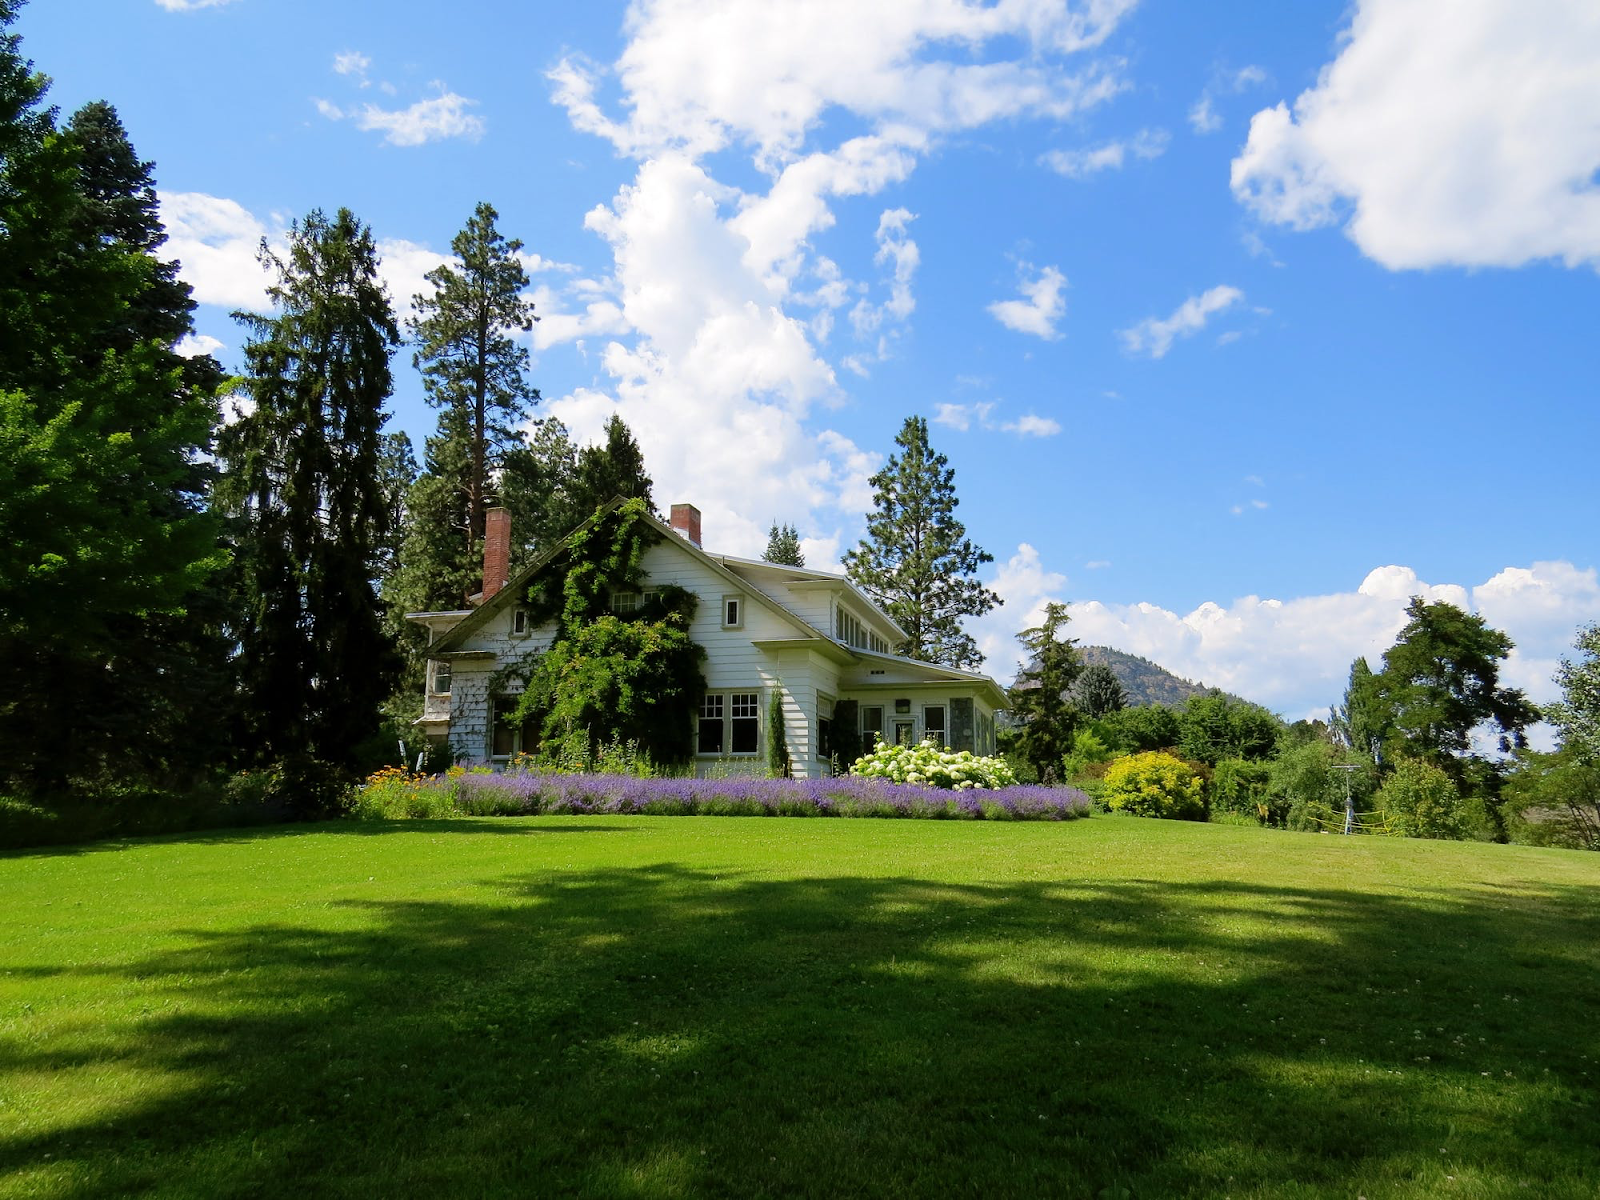 A side view of a white home with a sprawling green lawn